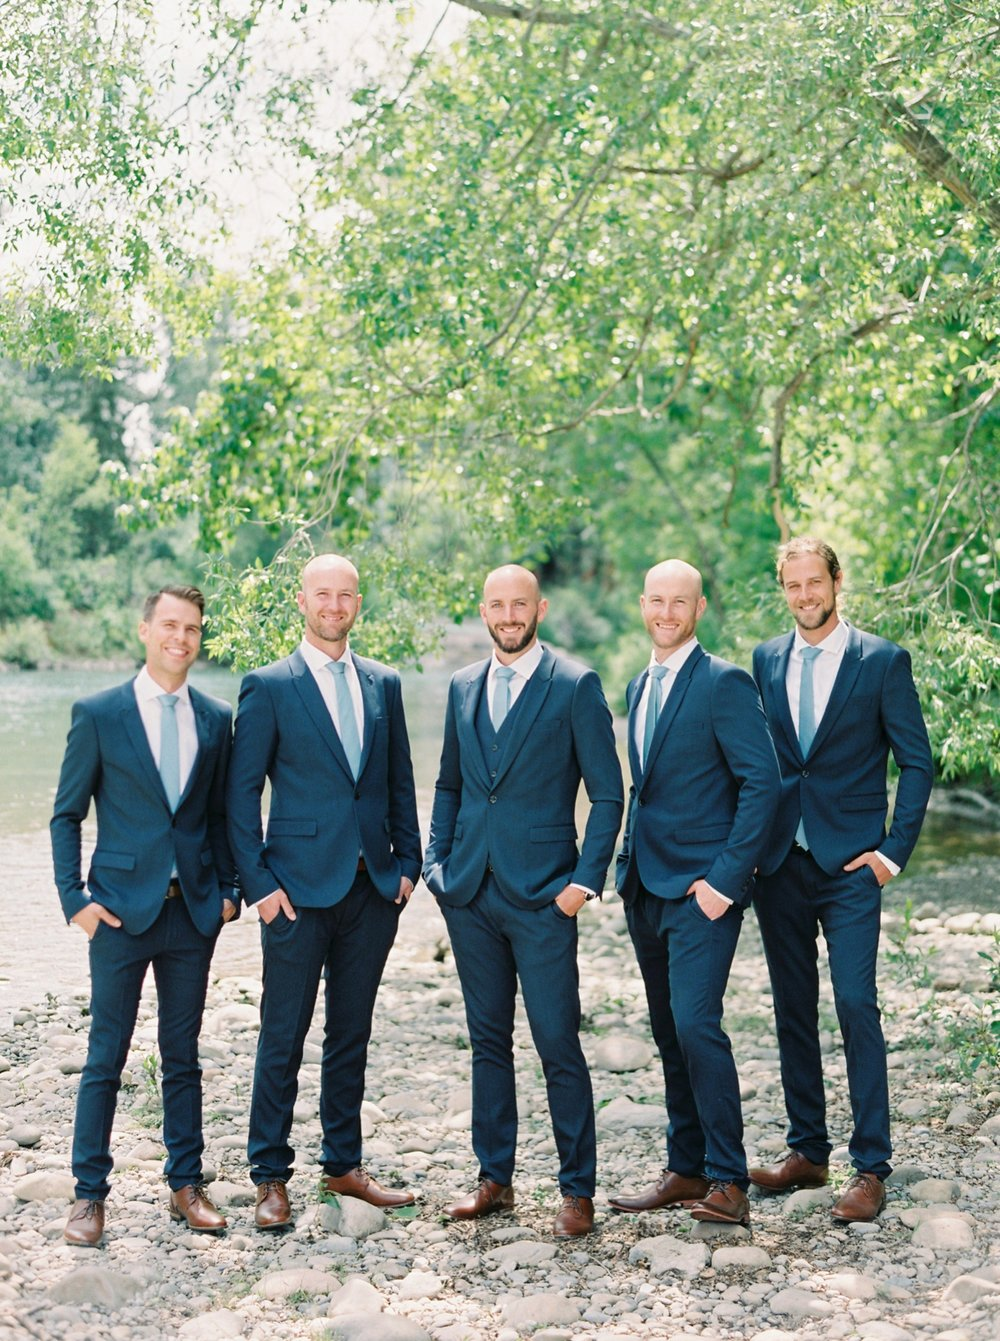 Calgary wedding photographers | The Gathered Farm Wedding | Justine milton fine art film photographer | Navy blue groomsmen suits